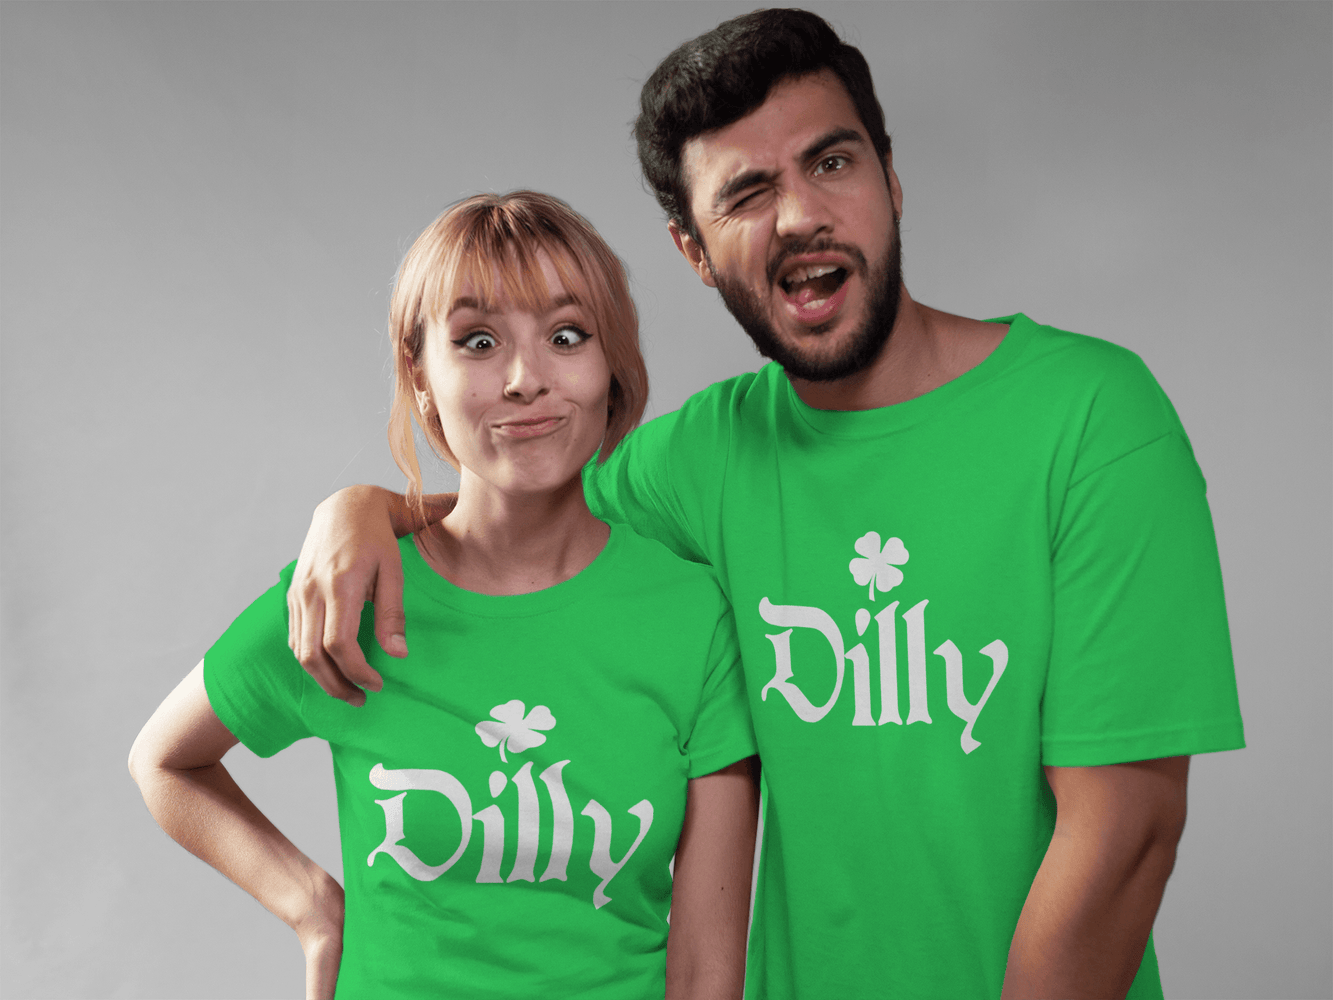 Matching St Patricks Day Green T Shirts Couples Saint Patricks Day Group Tees Funny Green Dilly Dilly Shirts - Miss Deplorable